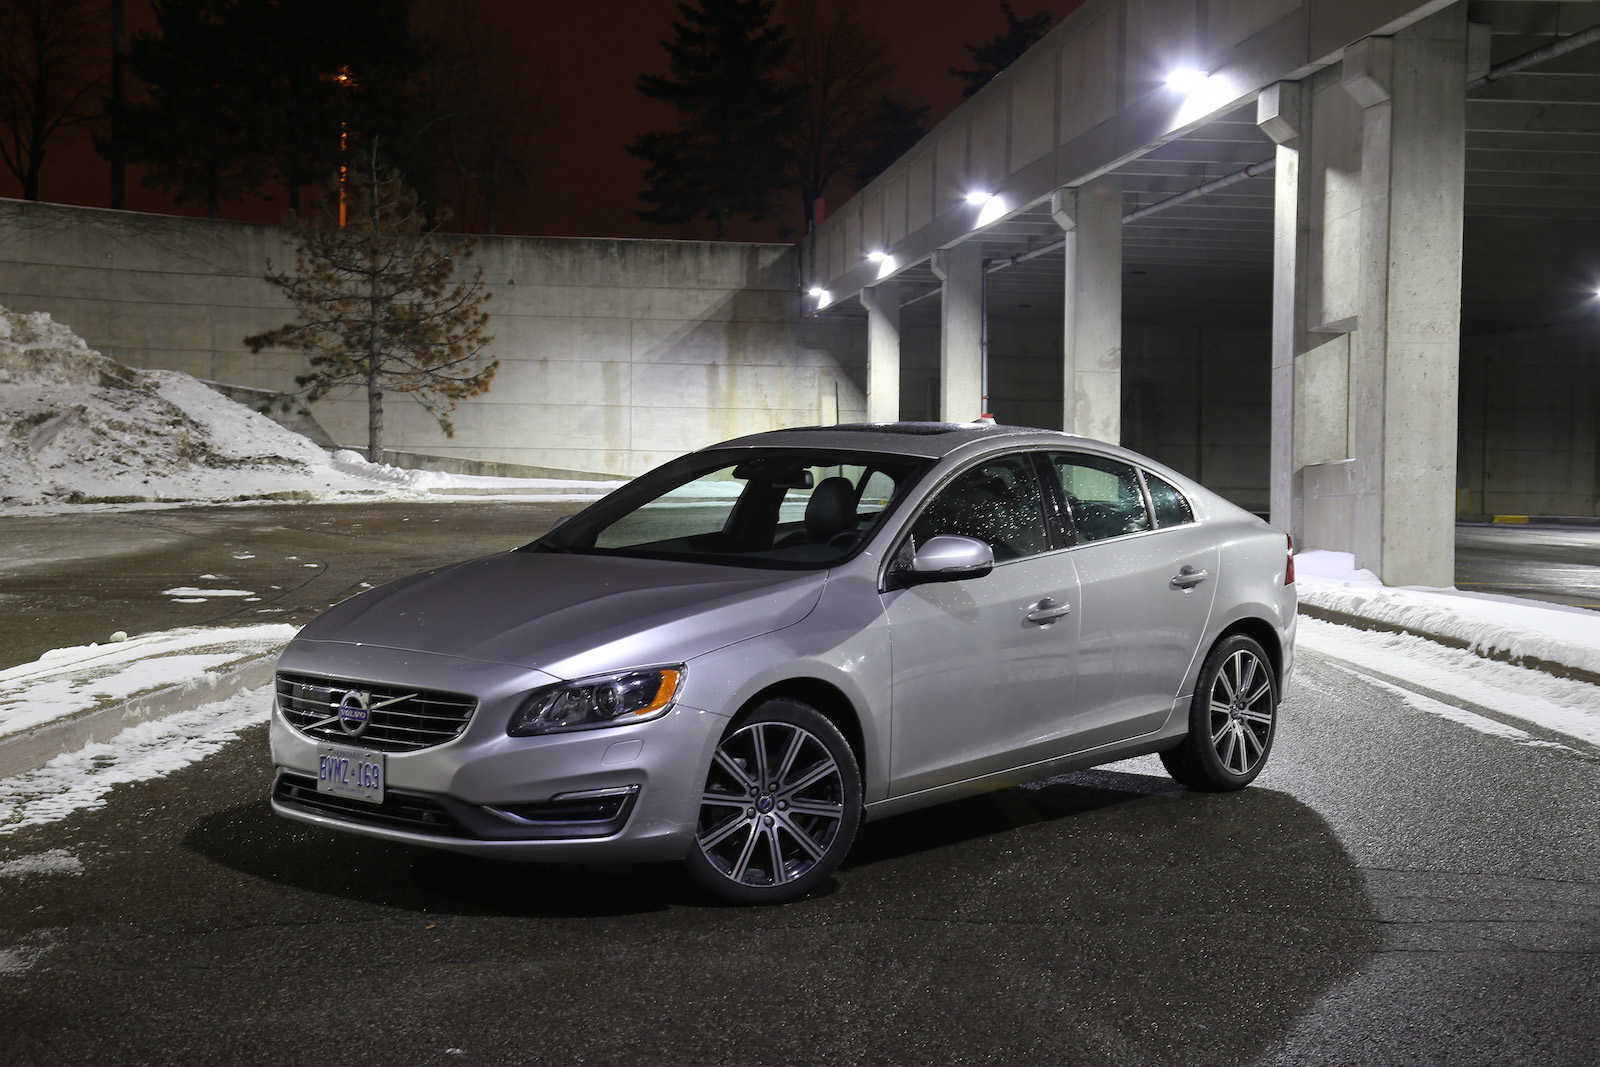 review 2015 volvo s60 t6 drive e canadian auto review. Black Bedroom Furniture Sets. Home Design Ideas